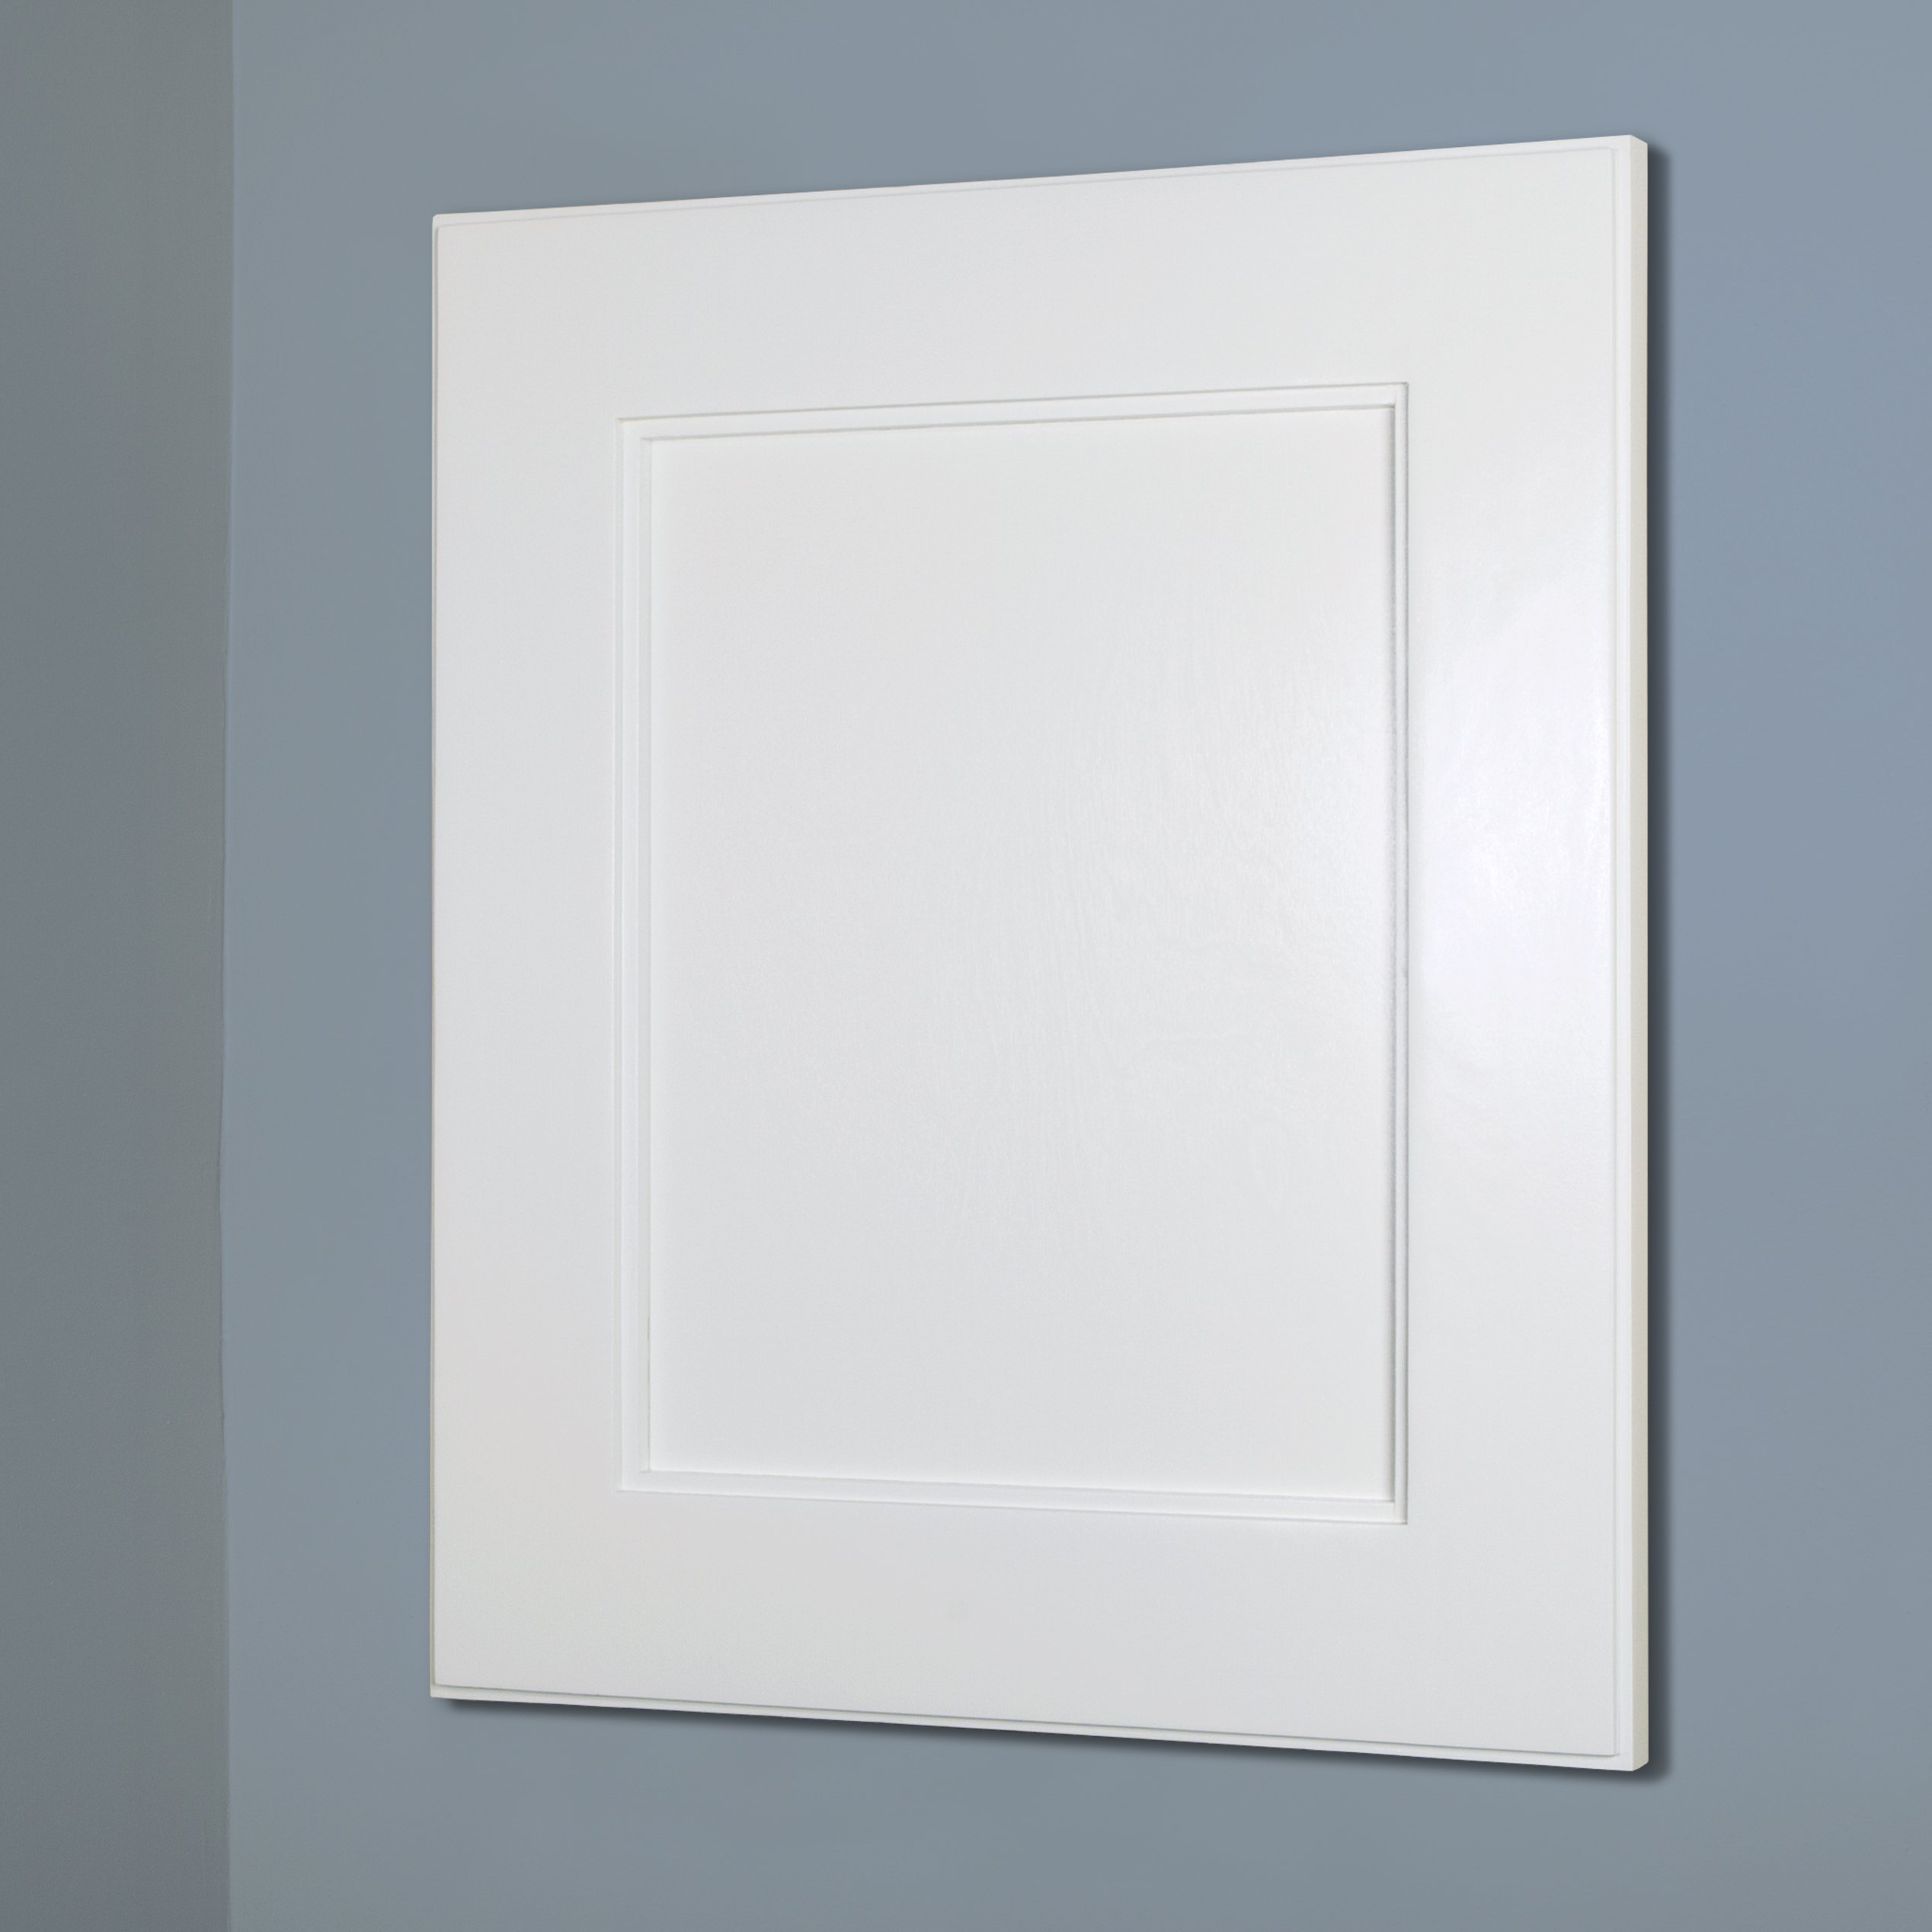 13x16 Shaker Style Recessed Medicine Cabinet by Fox Hollow Furnishings (Regular, White)